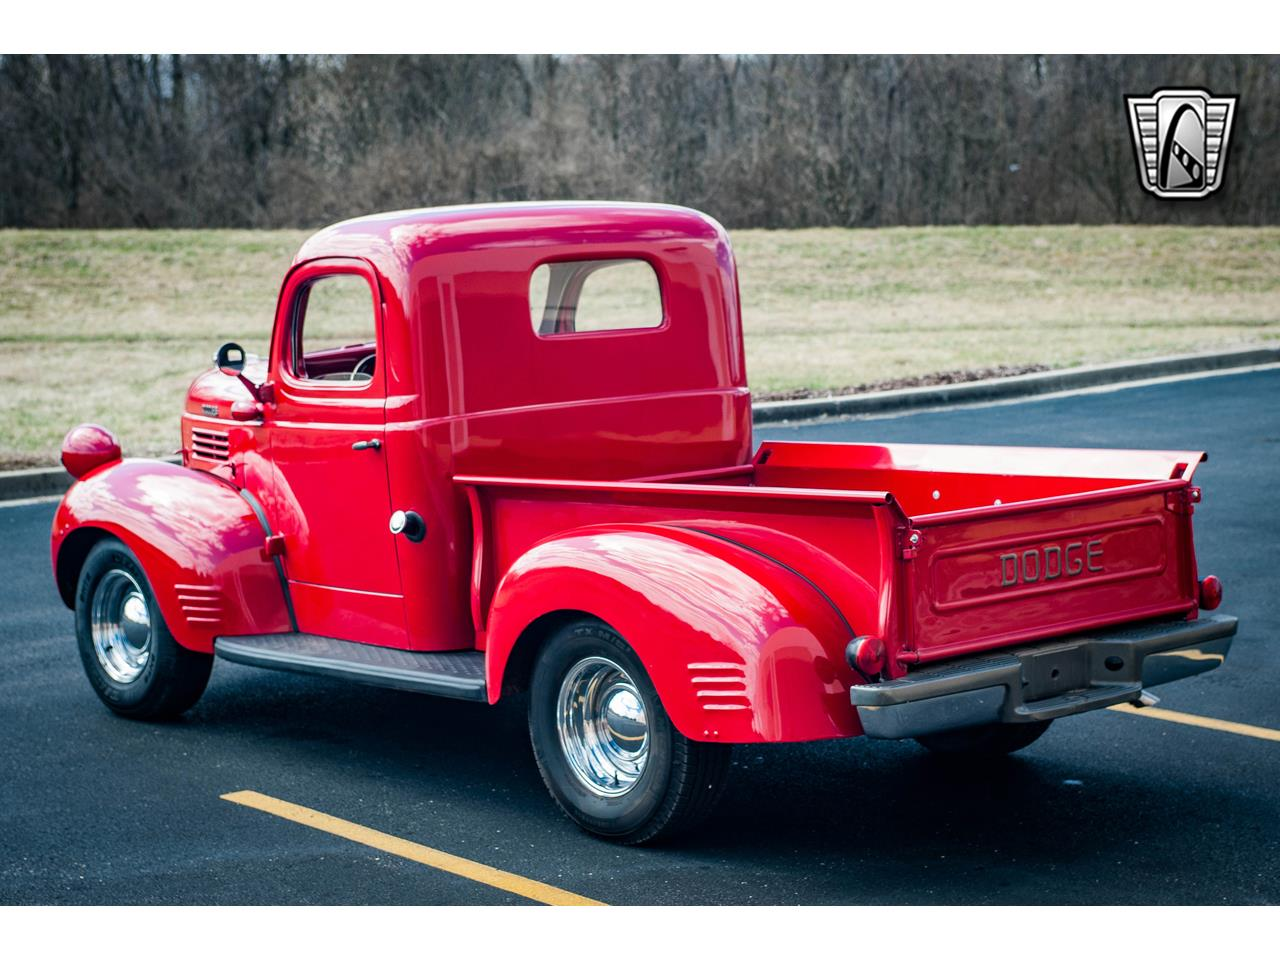 Large Picture of 1945 Dodge Pickup - $25,500.00 Offered by Gateway Classic Cars - St. Louis - QB7O